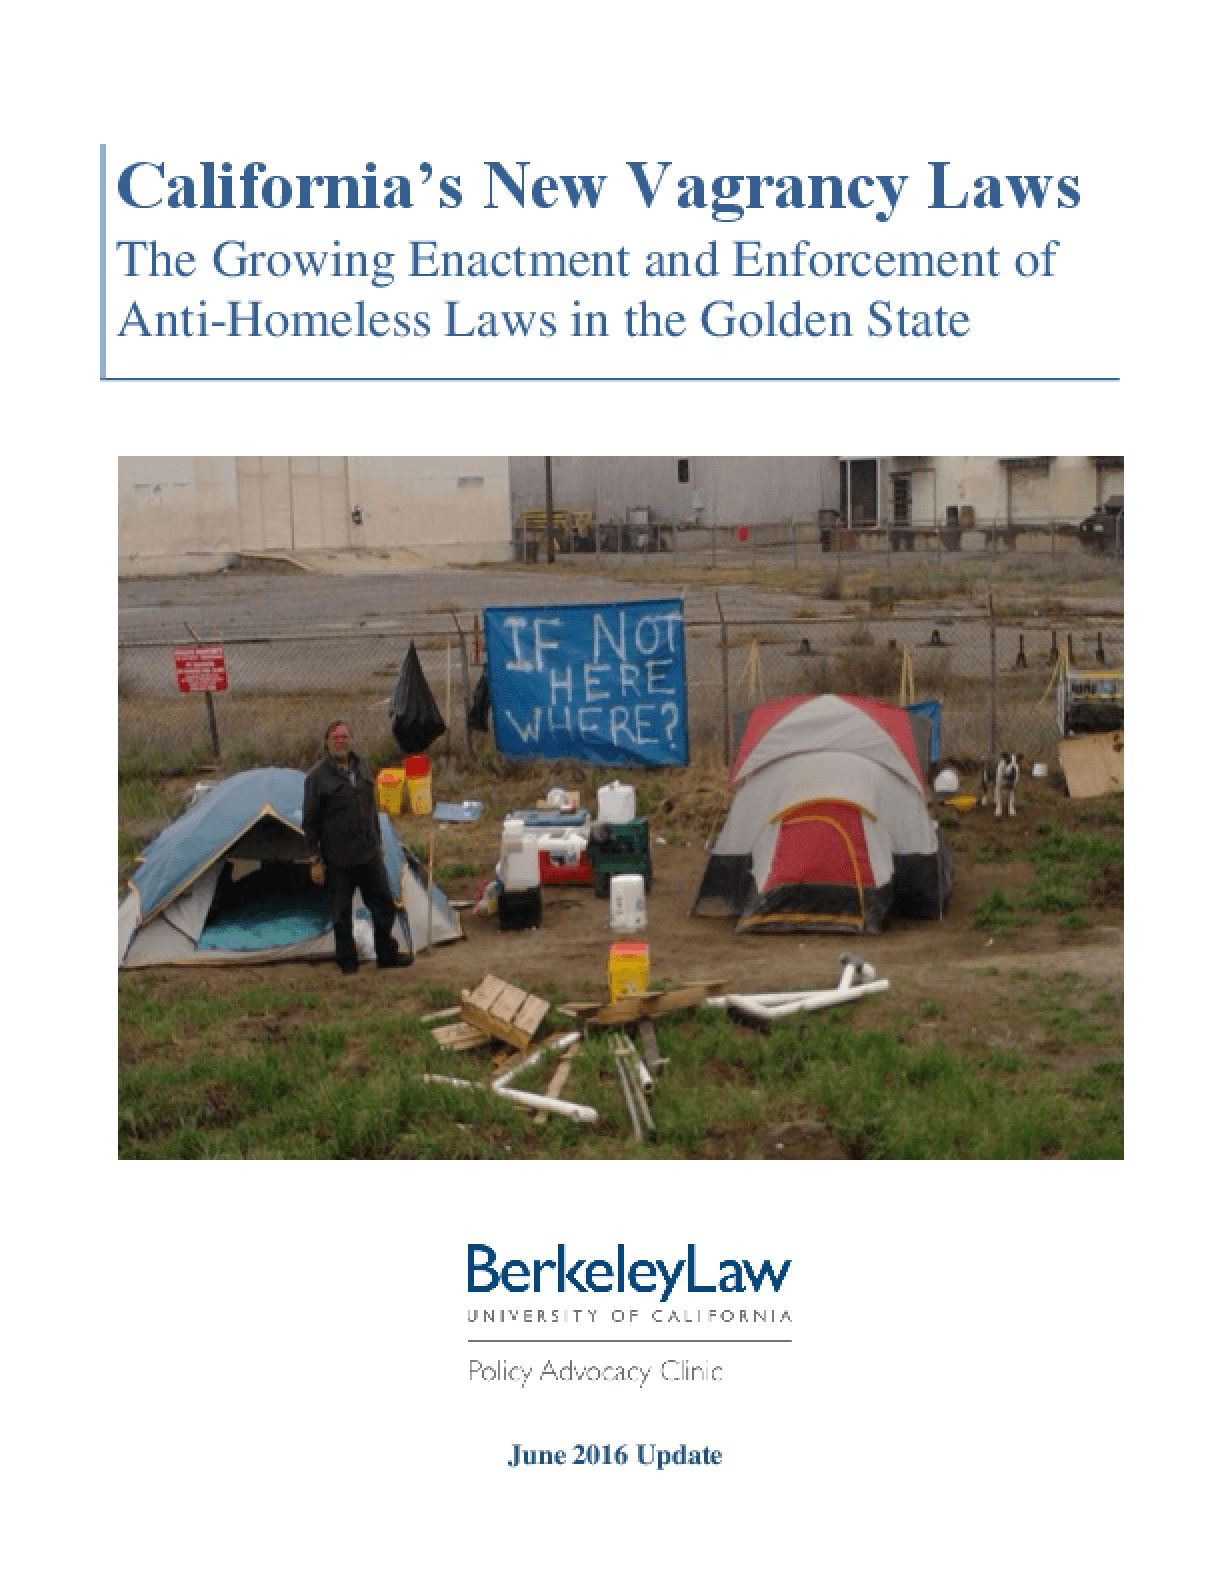 California's New Vagrancy Laws: The Growing Enactment and Enforcement of Anti-Homeless Laws in the Golden State